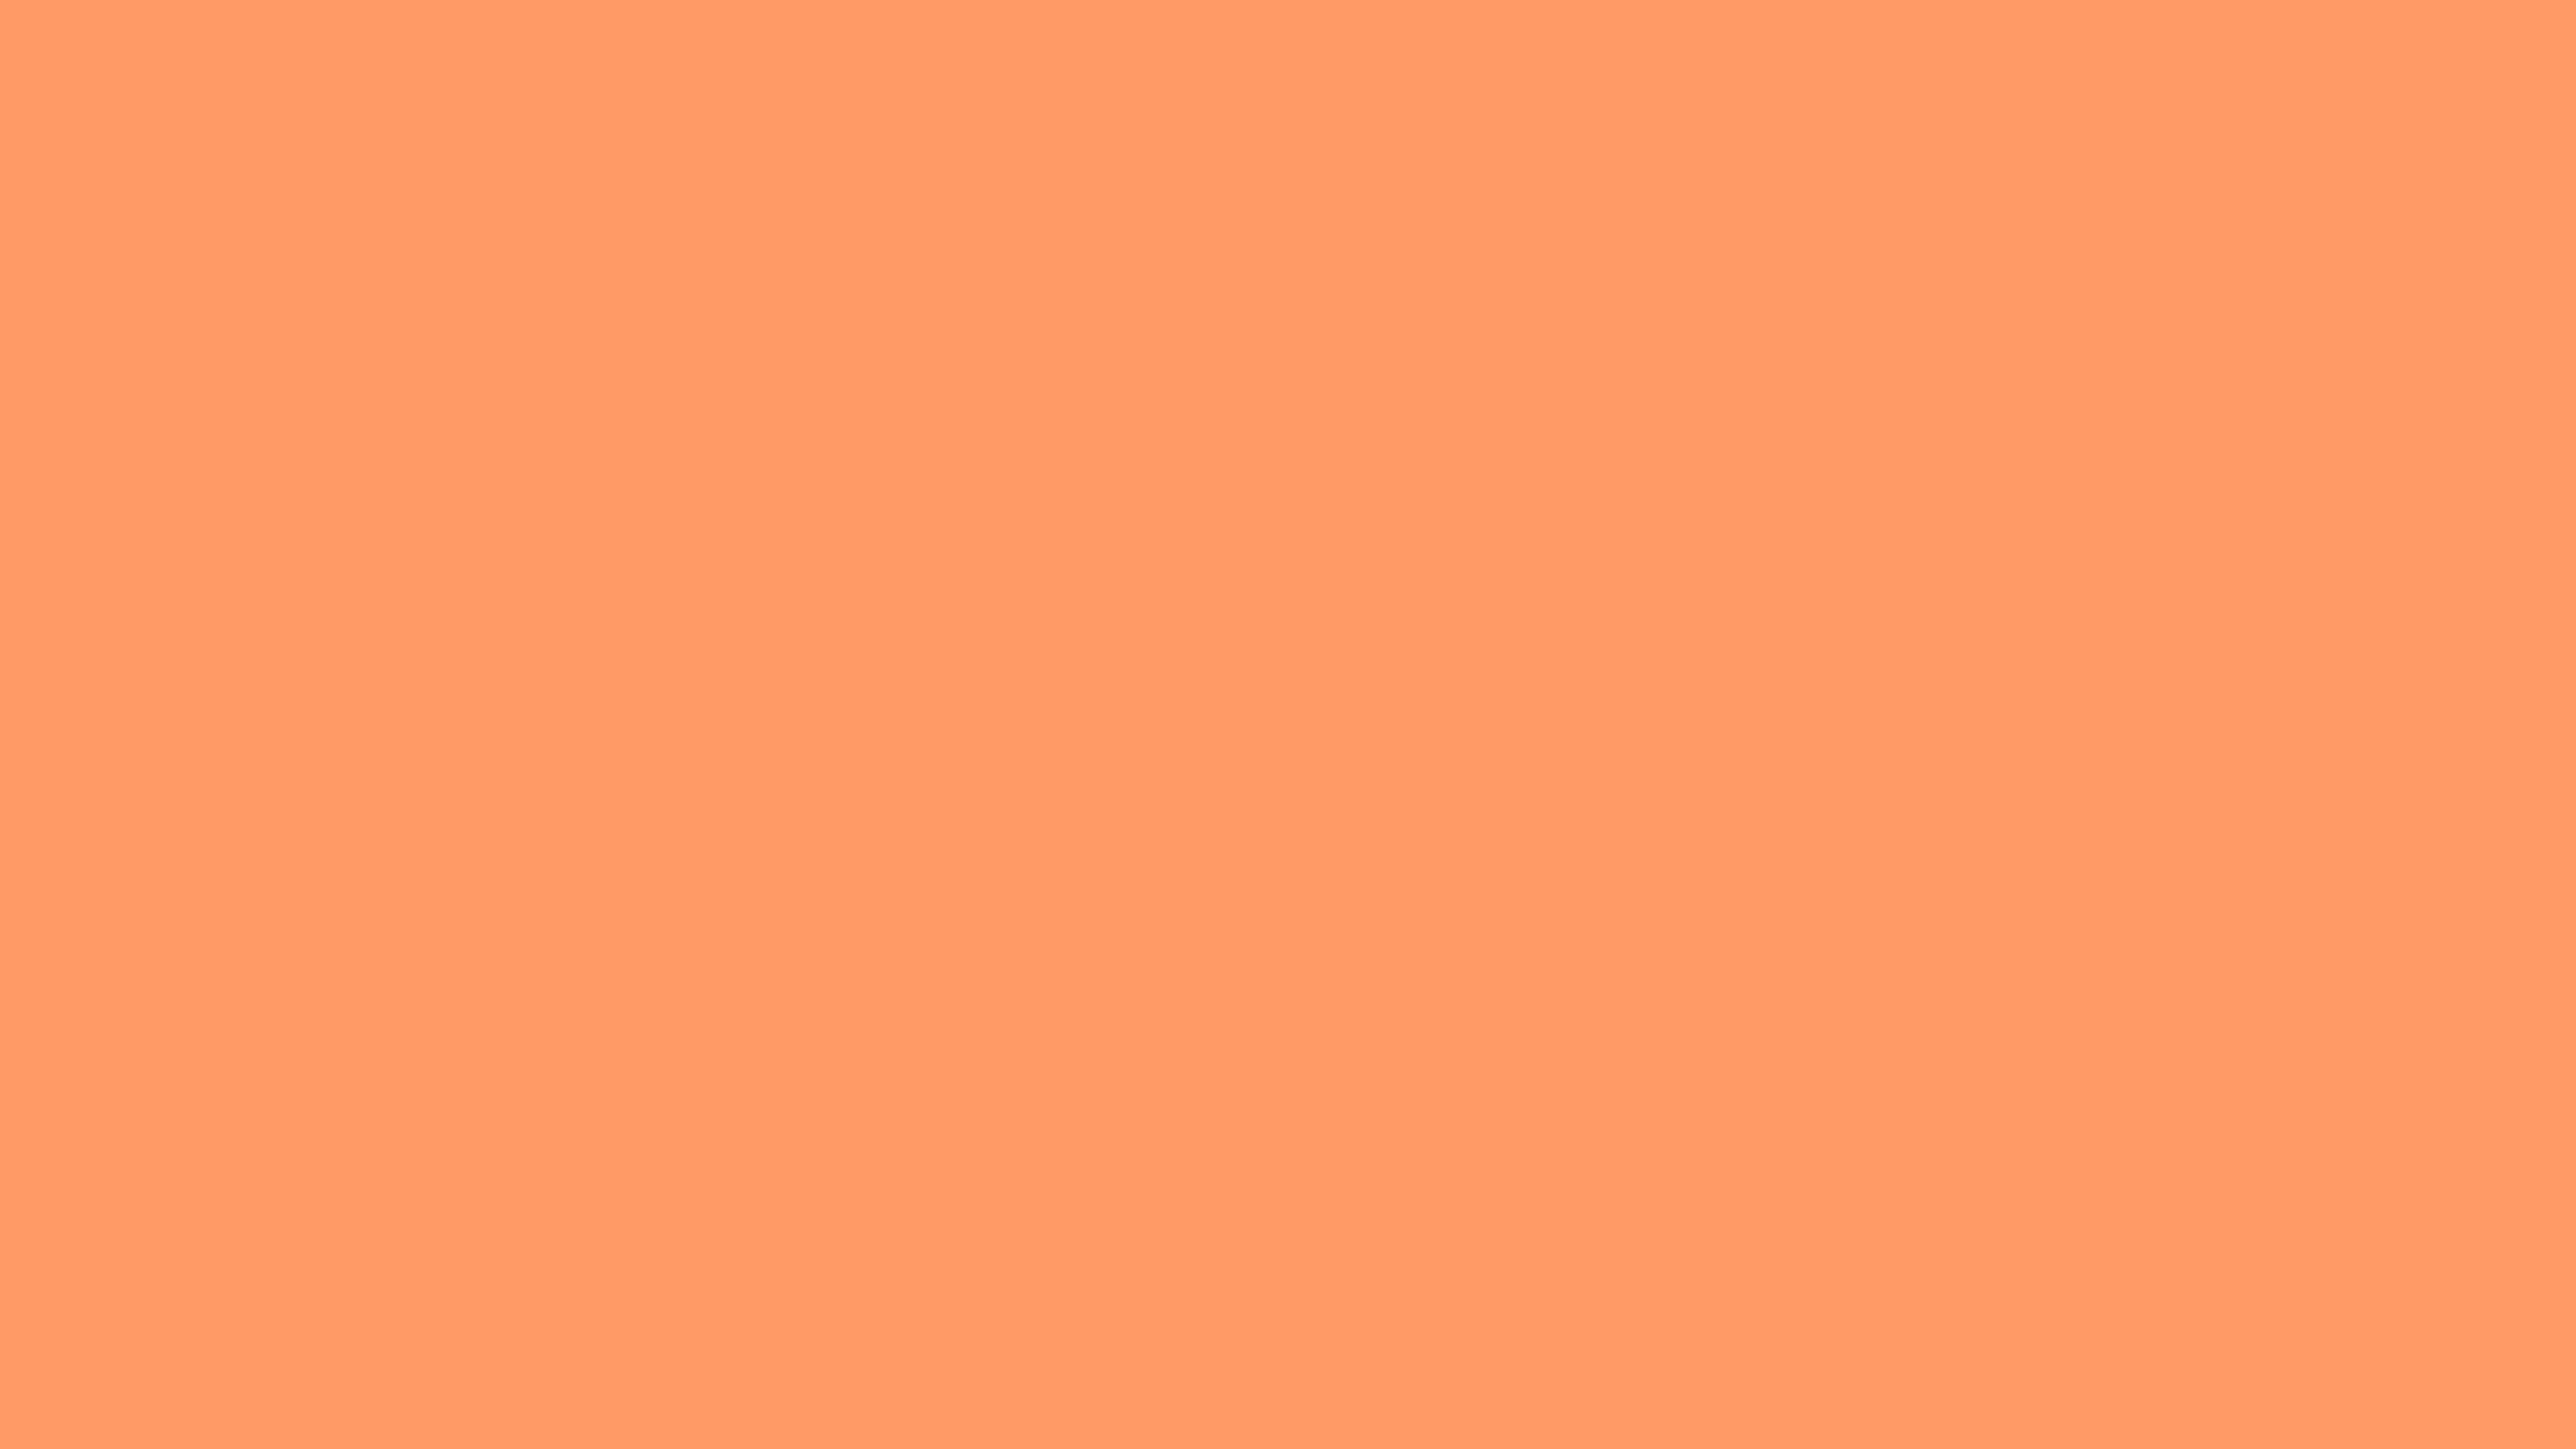 3840x2160 Atomic Tangerine Solid Color Background